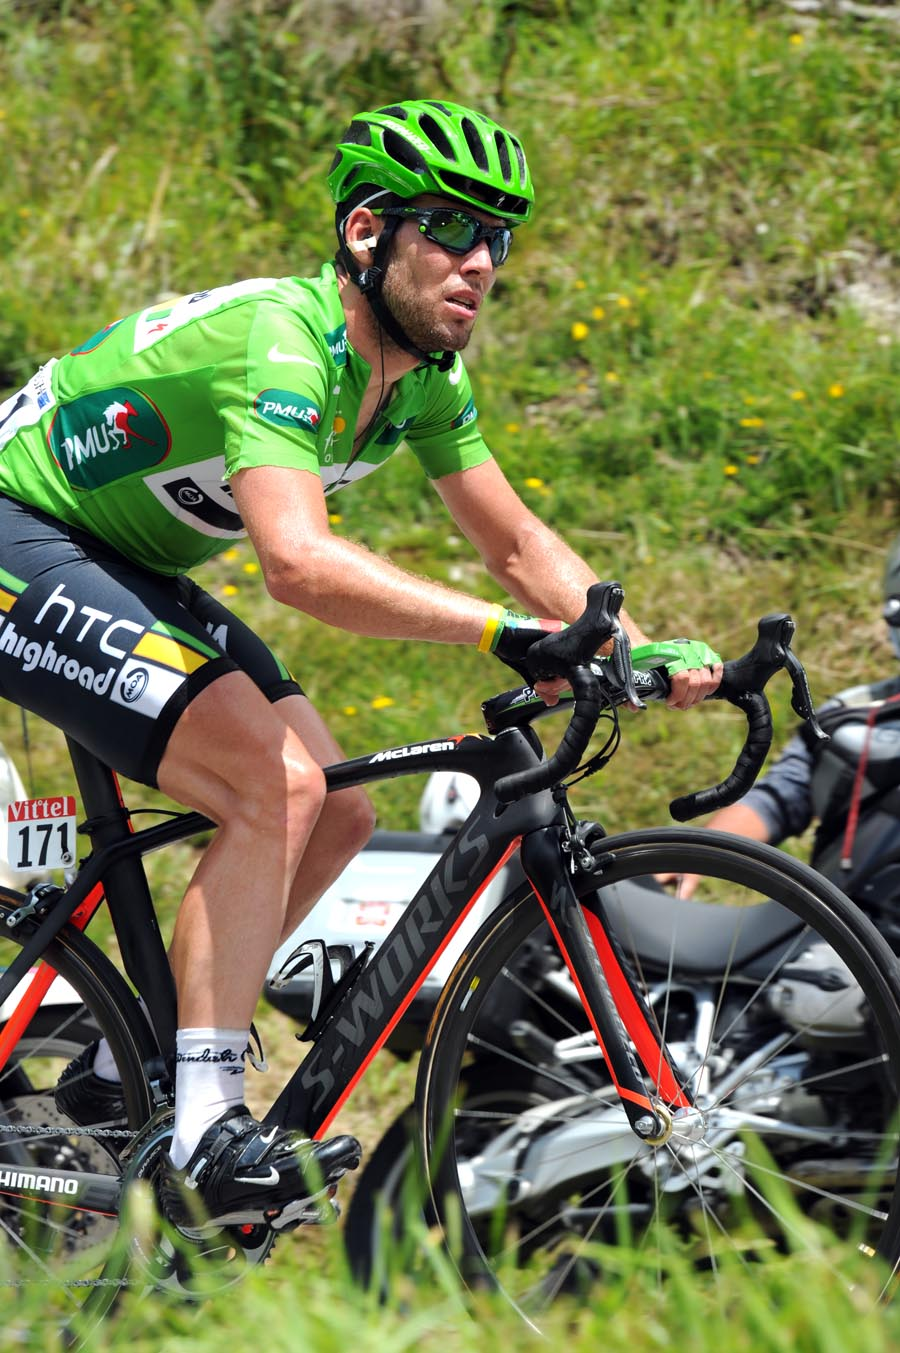 Mark Cavendish, Tour de France 2011, stage 14